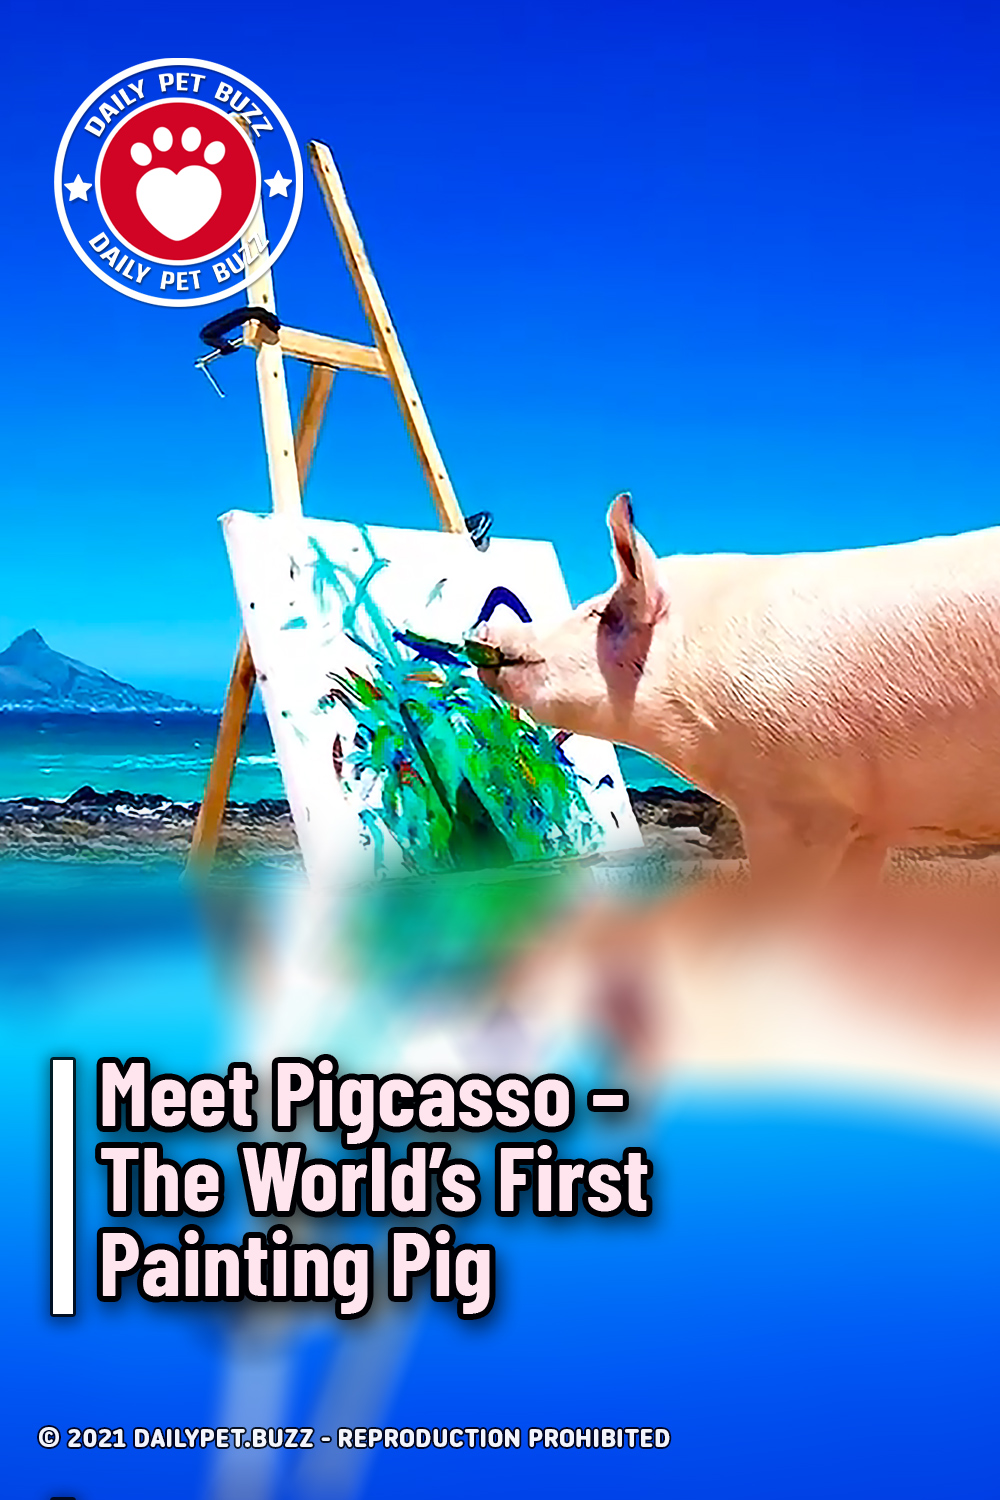 Meet Pigcasso - The World's First Painting Pig